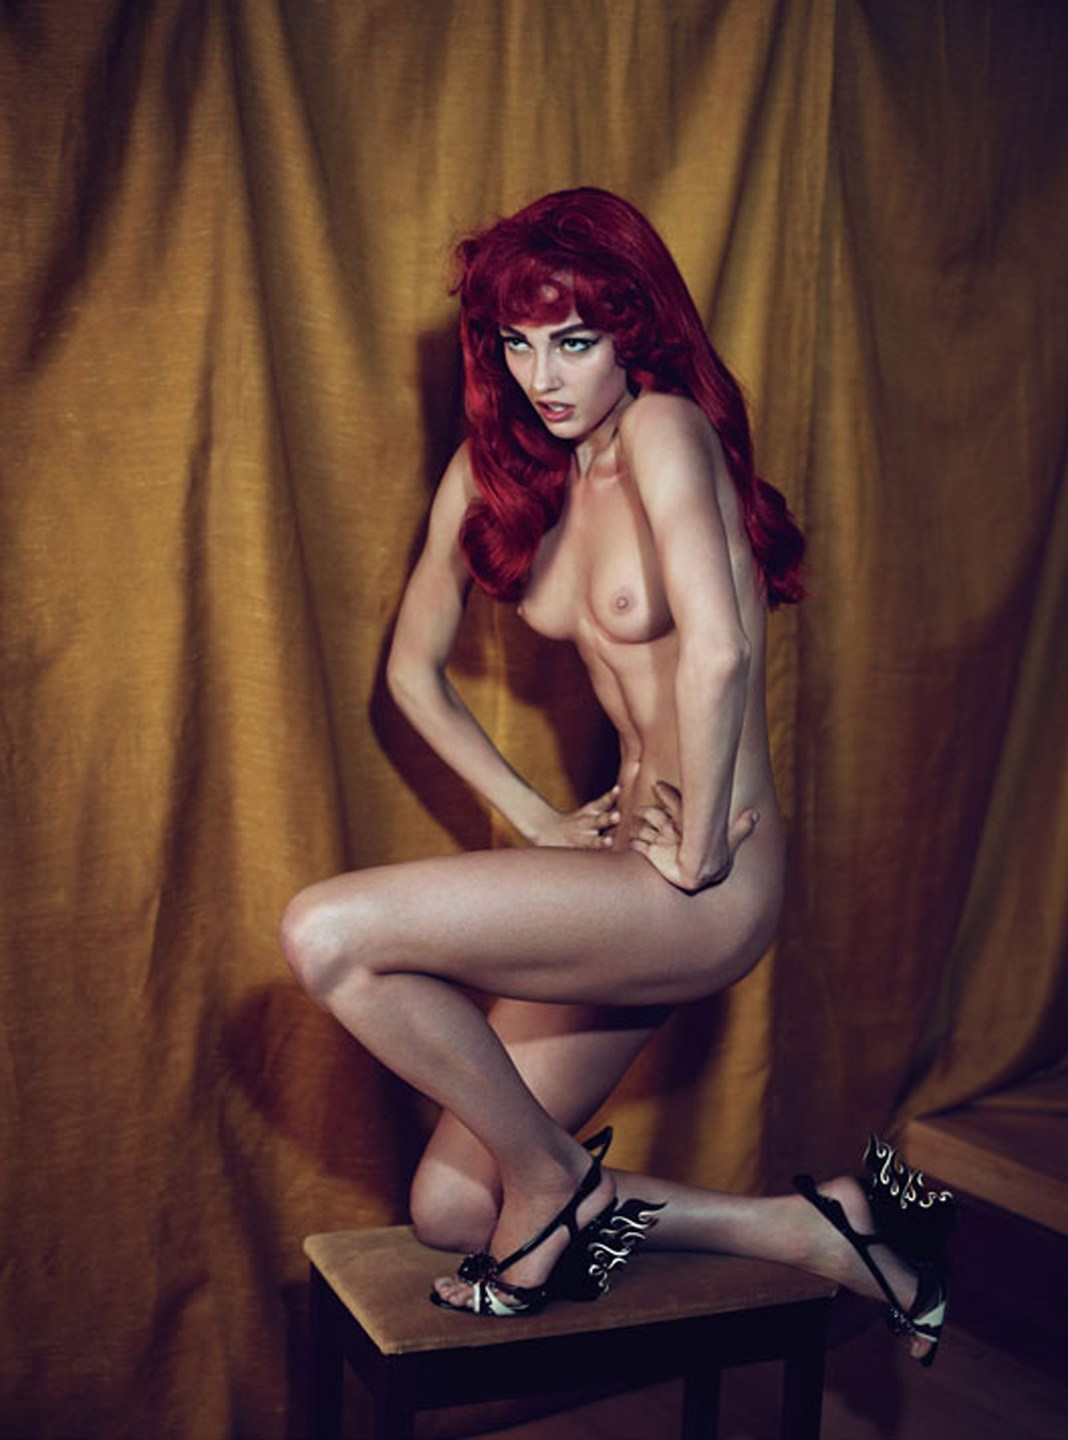 pussylesqueer:  Karmen Pedaru: The Girly Show - W by Mert & Marcus, March 2012